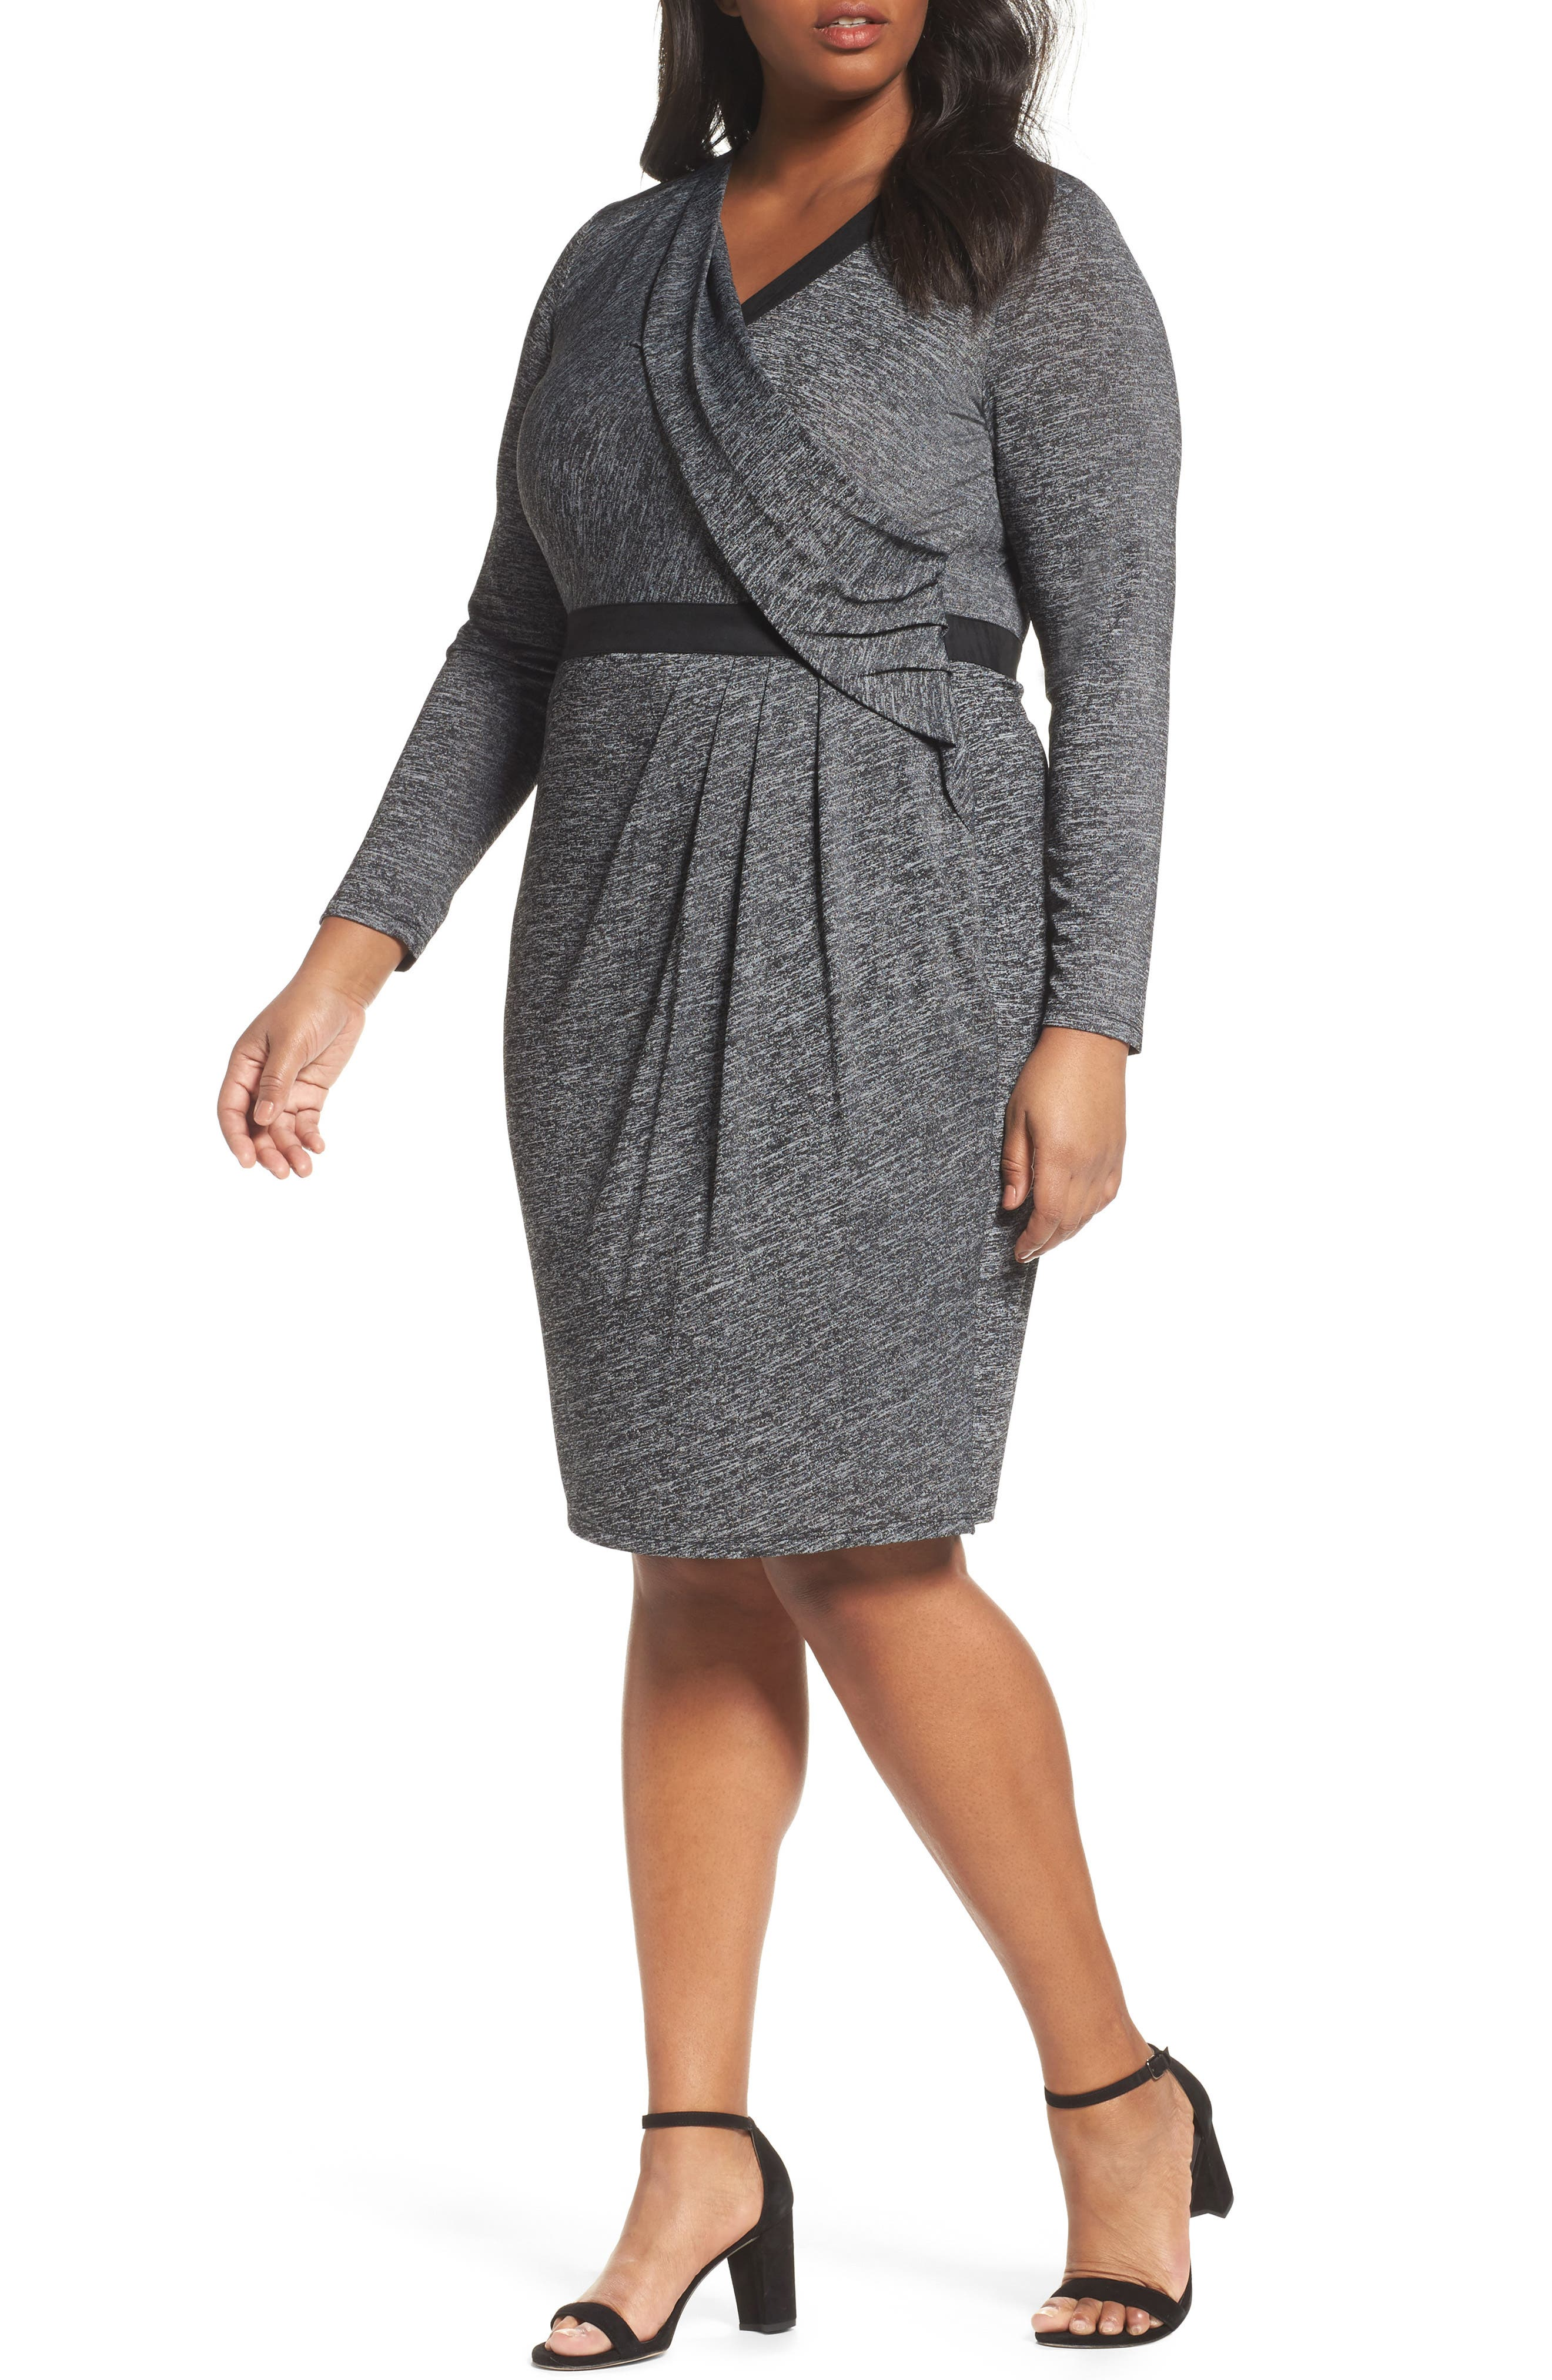 Alternate Image 1 Selected - Adrianna Papell Knit Faux Wrap Dress (Plus Size)